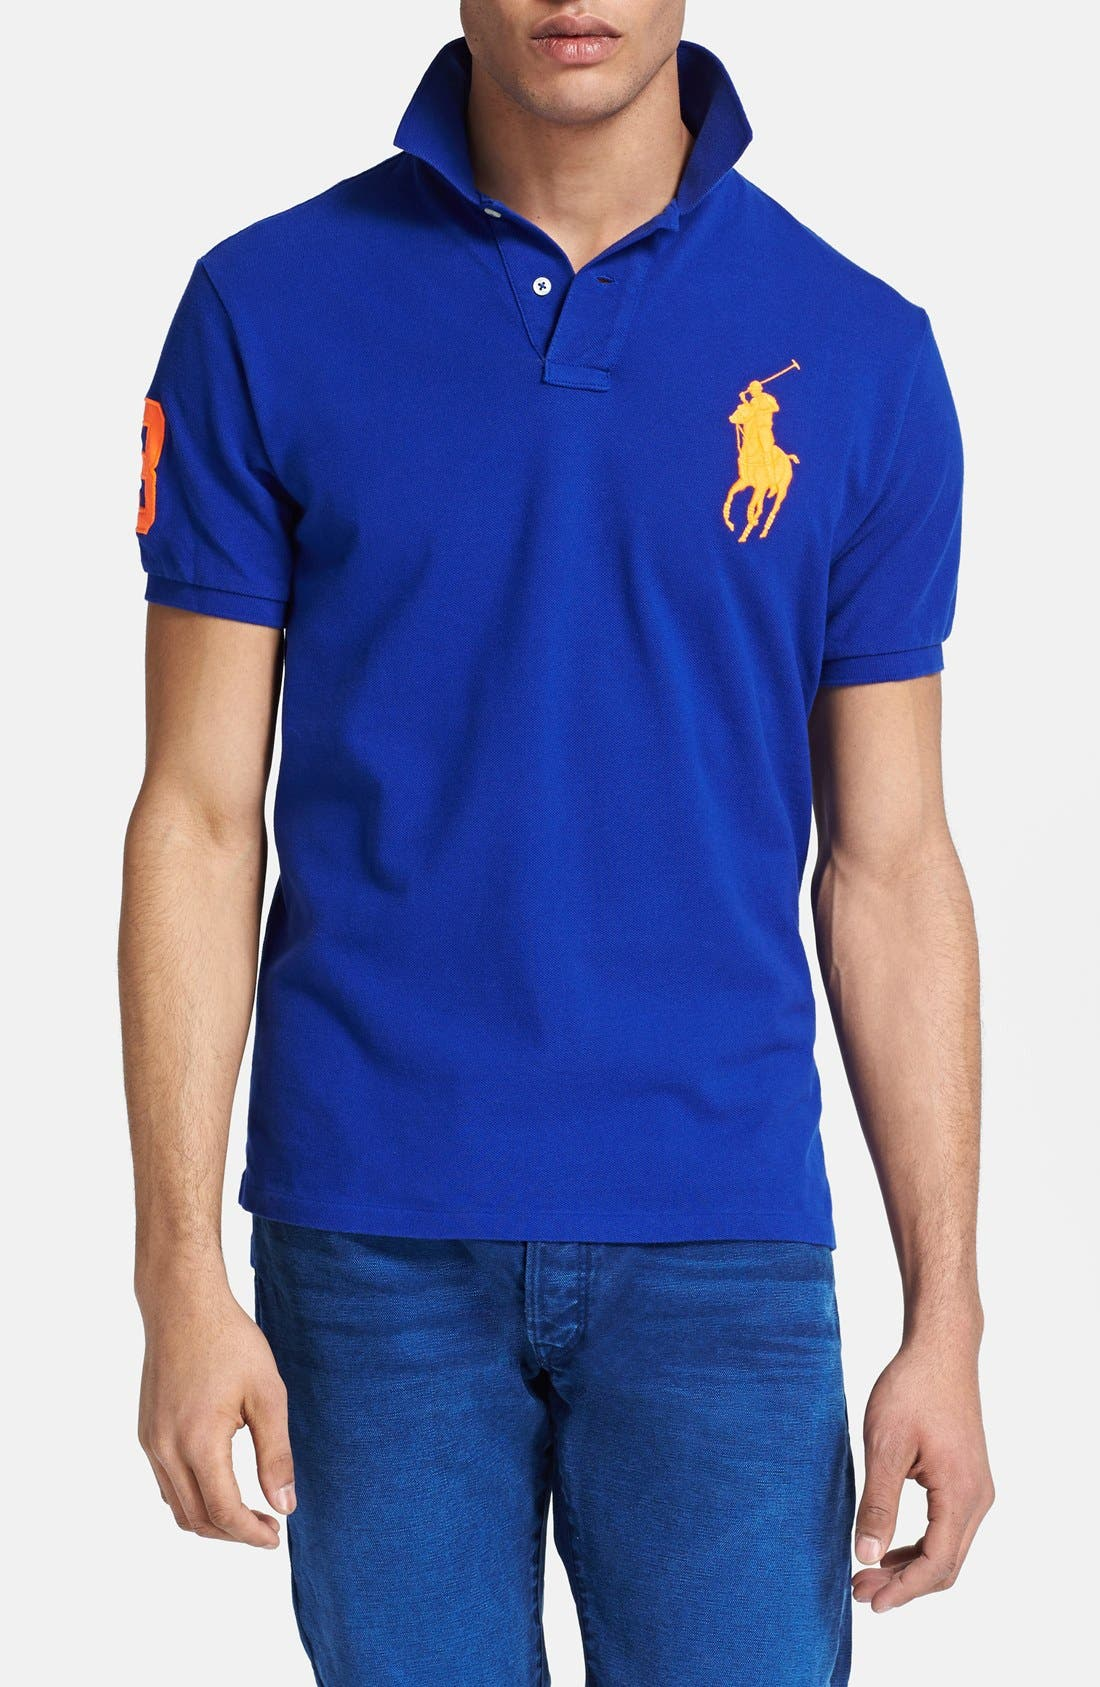 bc3835f0537 ... promo code for ralph lauren big pony 3 polo shirt 5076c c8819